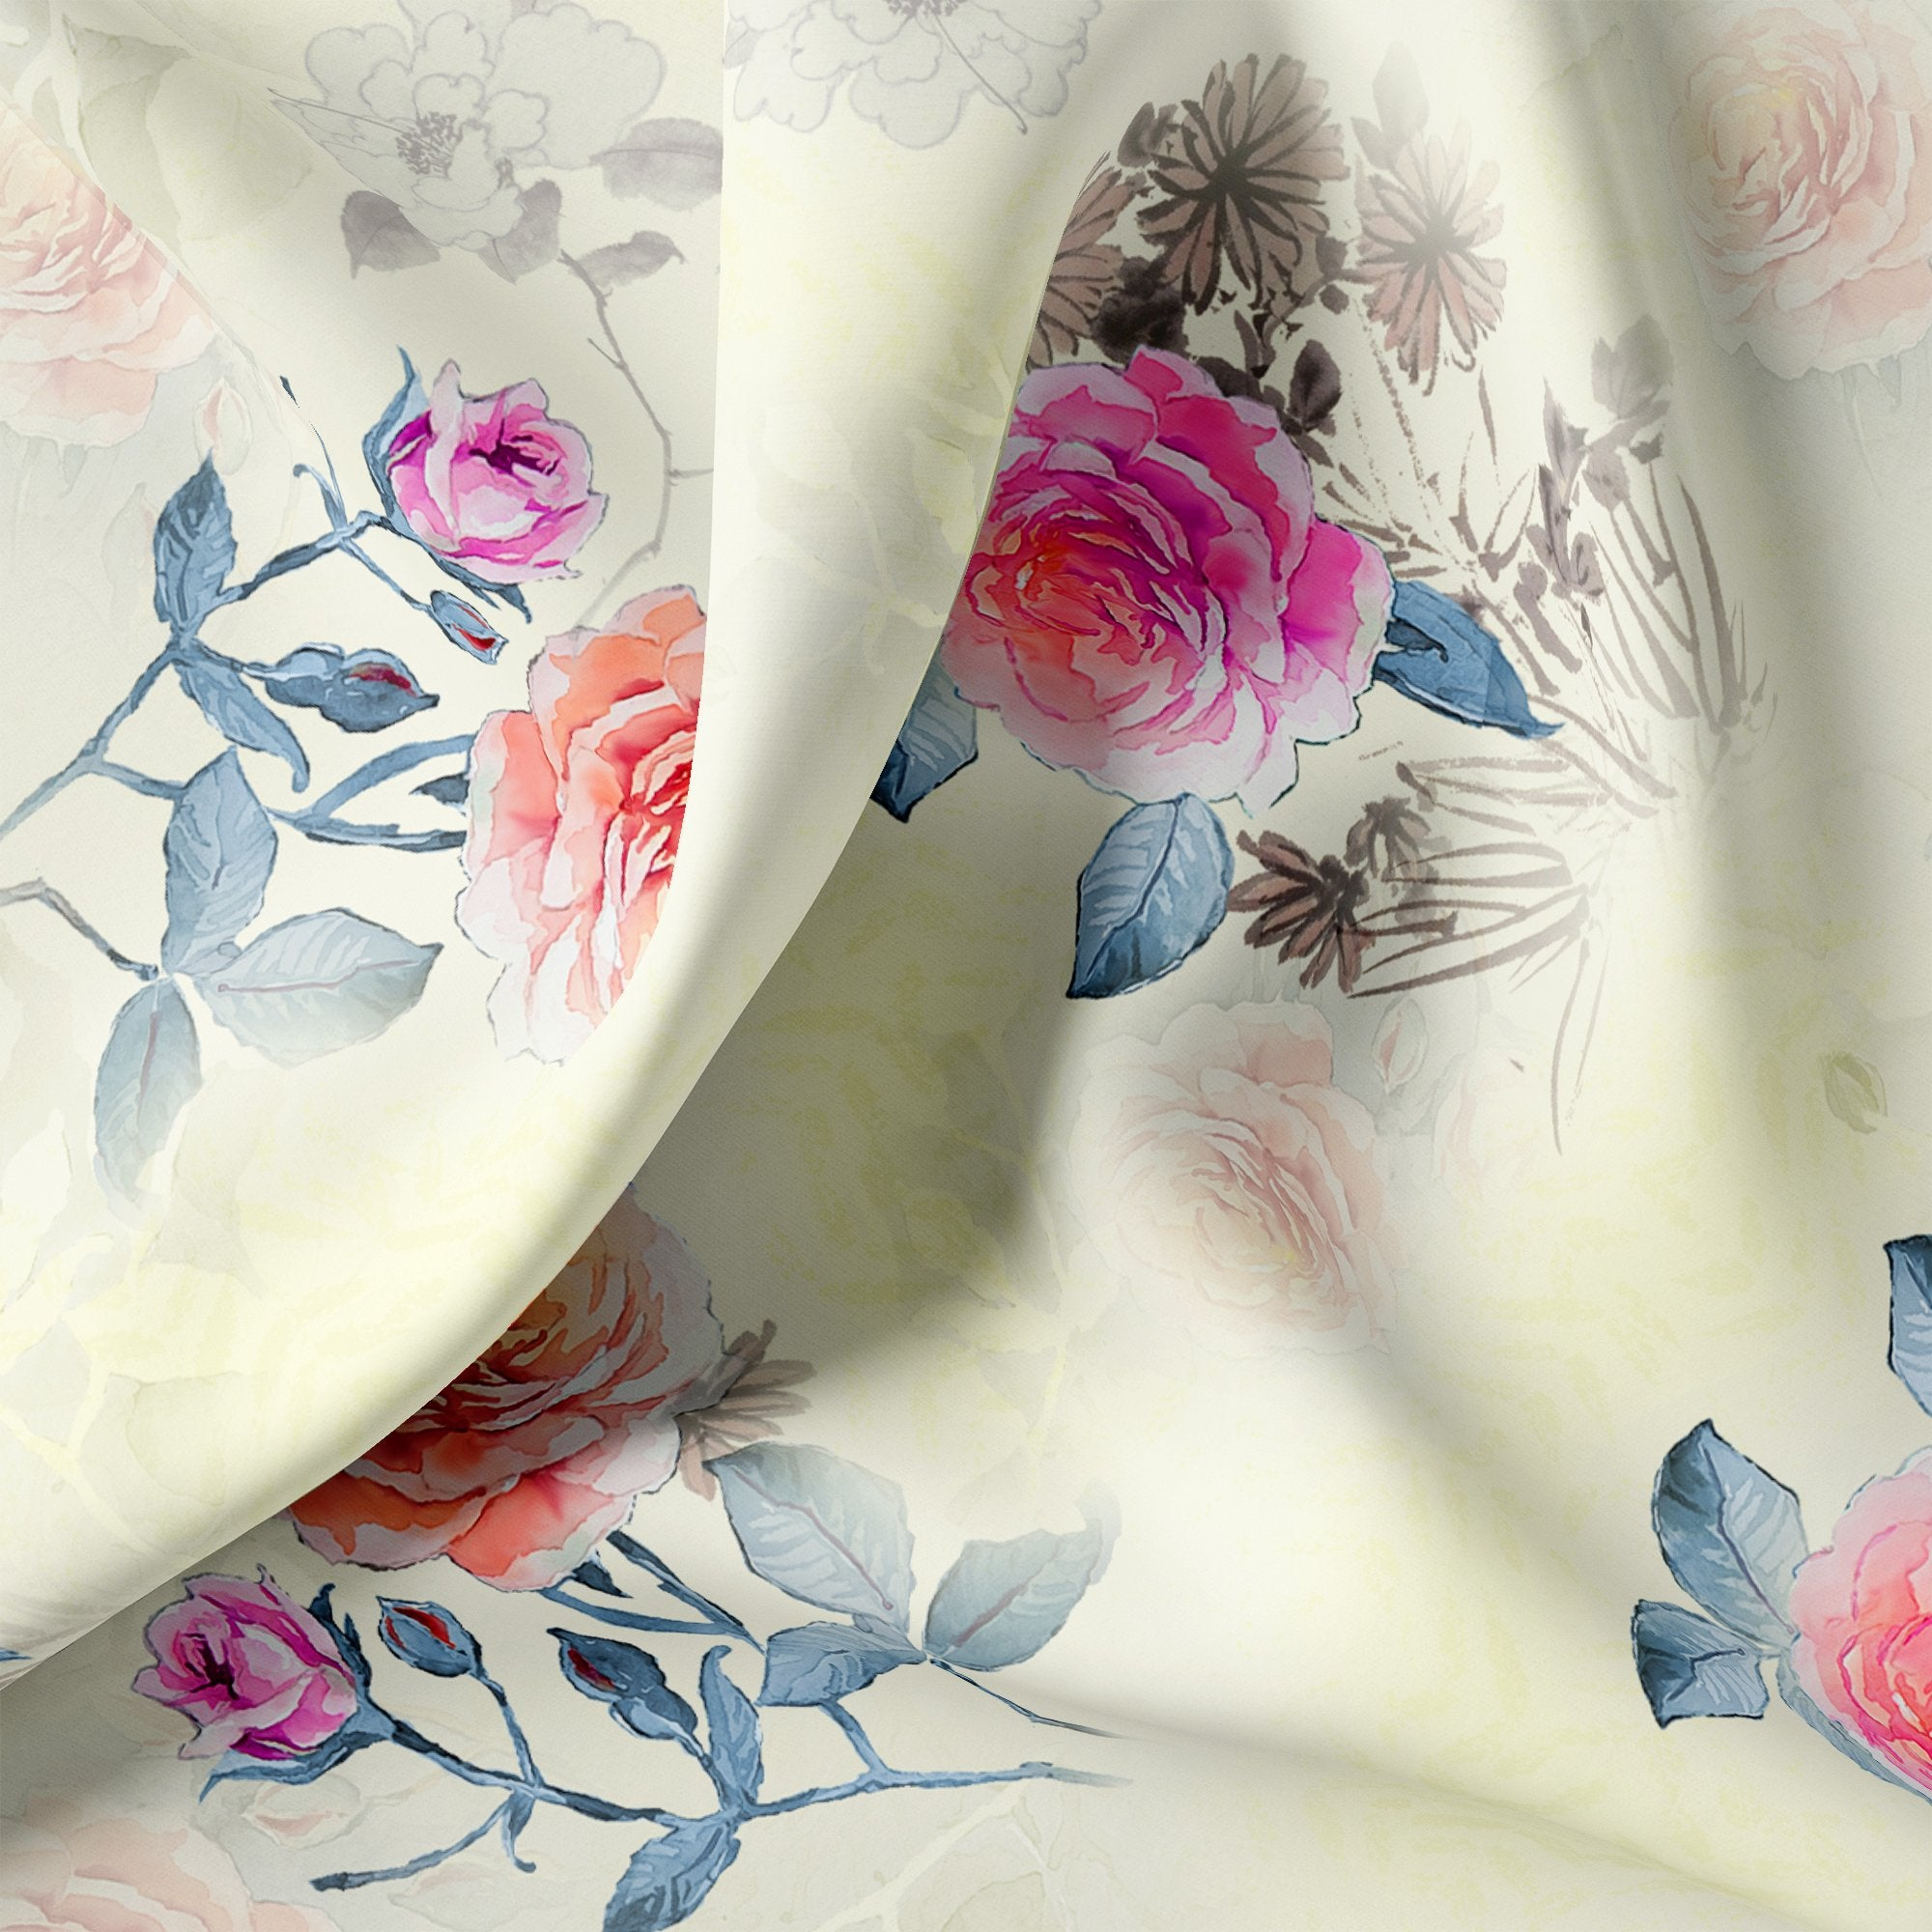 Roses Floating on Yellow Base Digital Printed Fabric - FAB VOGUE Studio. Shop Fabric @ www.fabvoguestudio.com